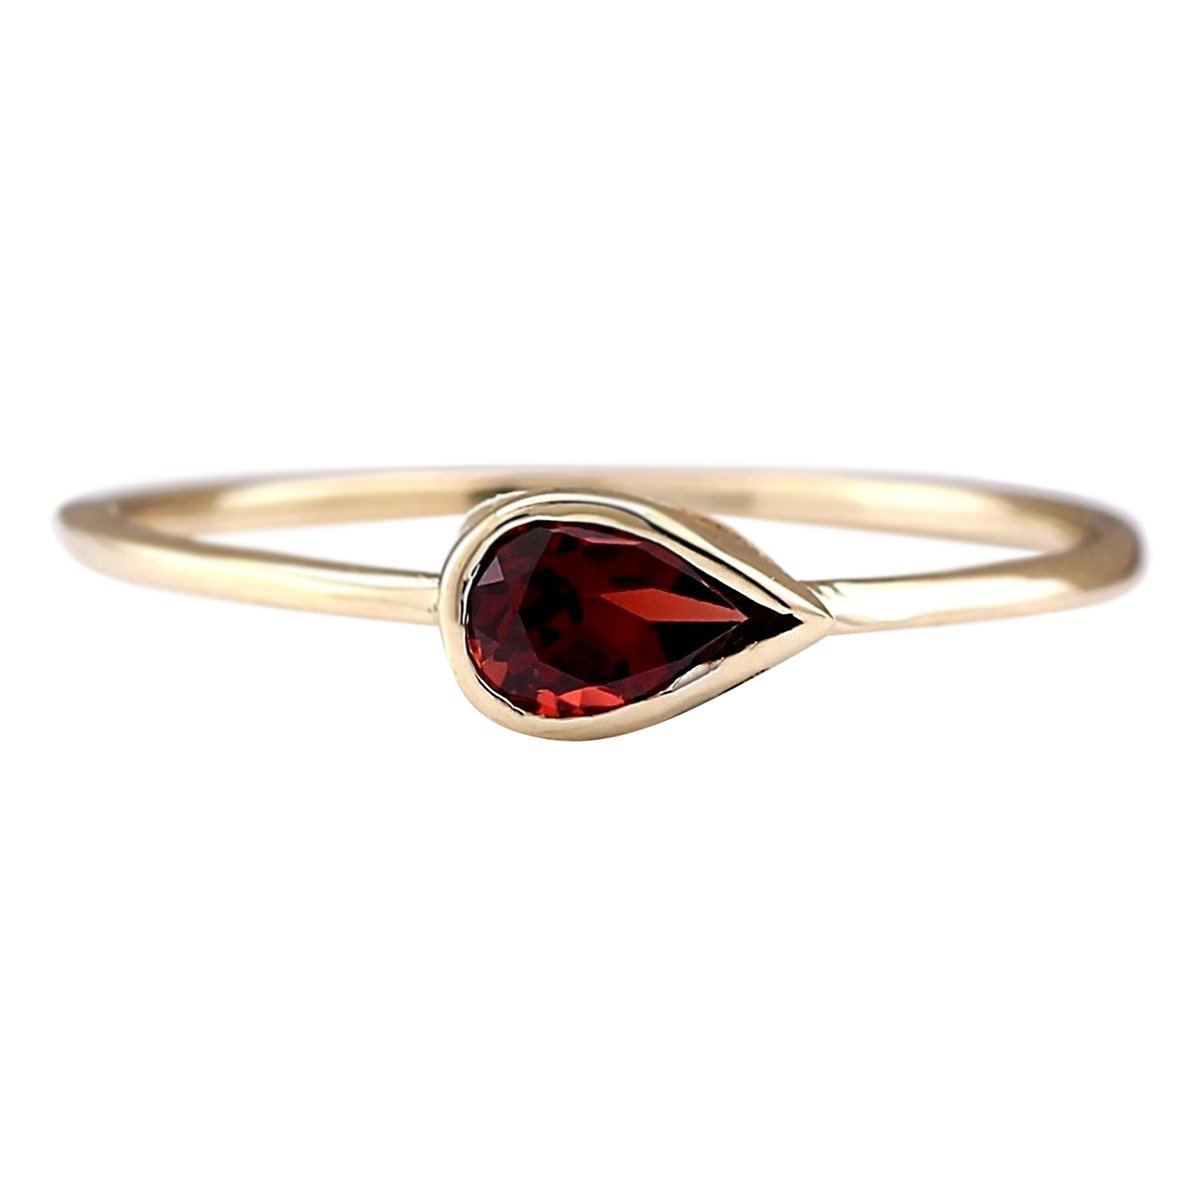 0.5 Carat Natural Red Rhodolite Garnet 14K Yellow Gold Solitaire Promise Ring for Women